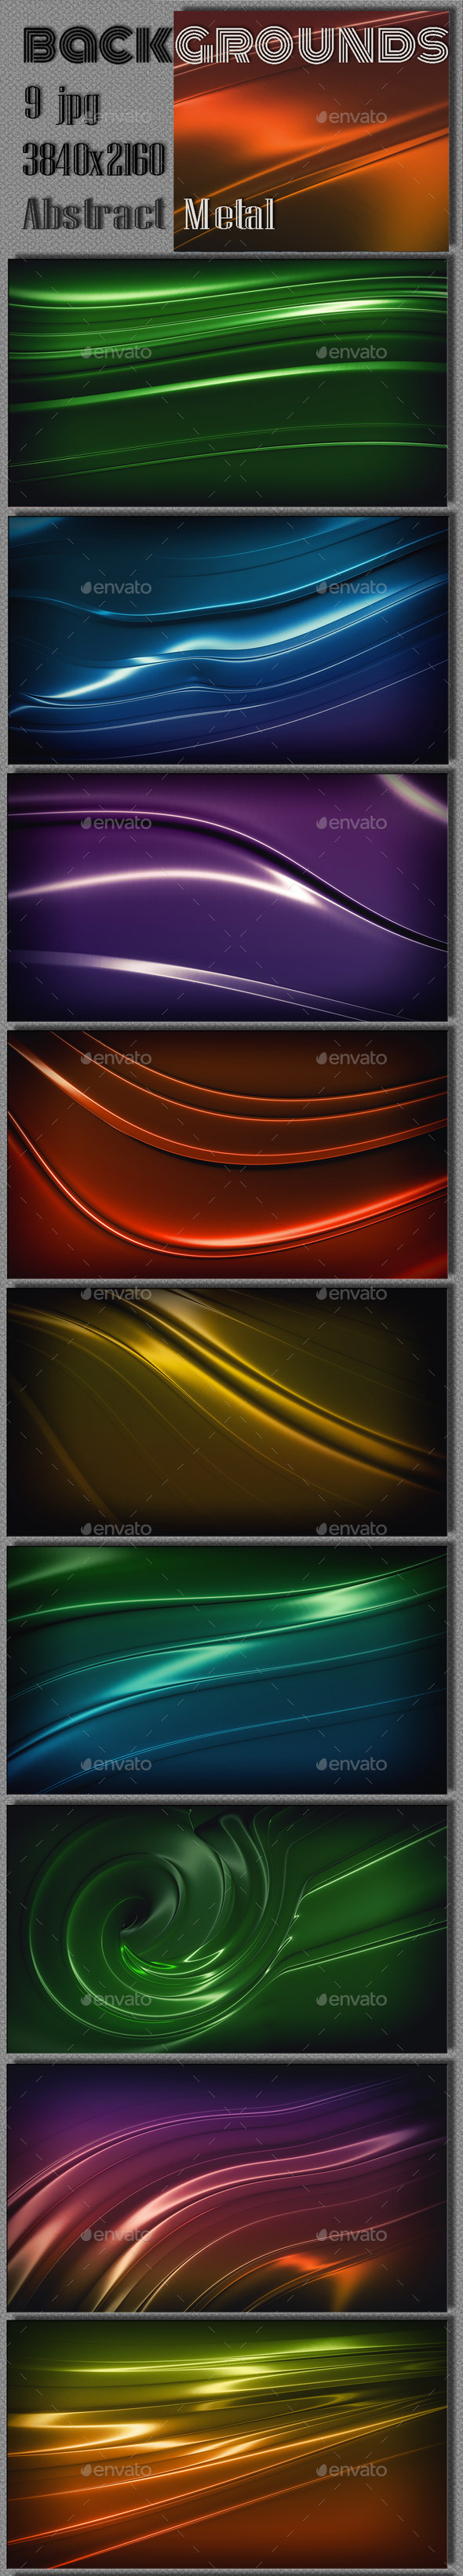 GraphicRiver Glossy Steel 3D Wallpaper 8989292